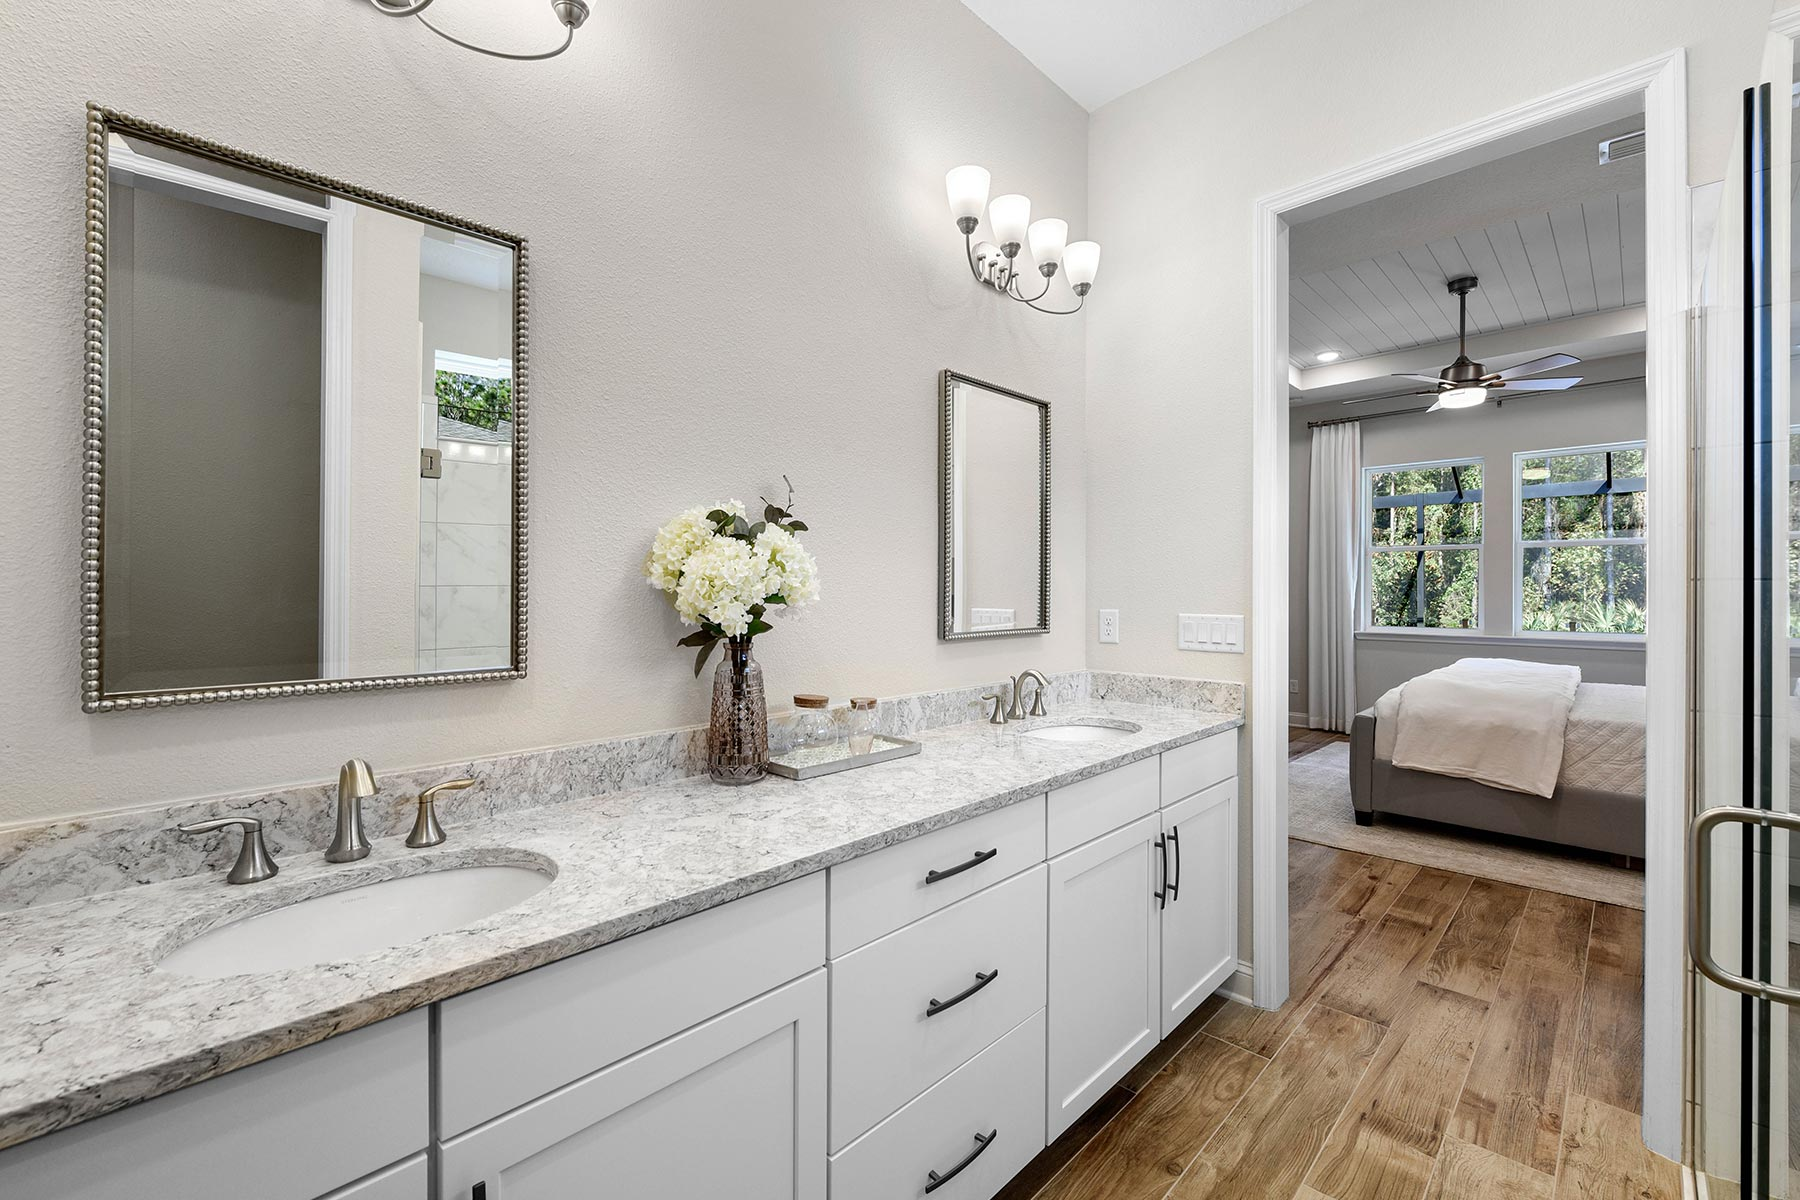 Court Plan Bath at RiverTown - WaterSong in St. Johns Florida by Mattamy Homes